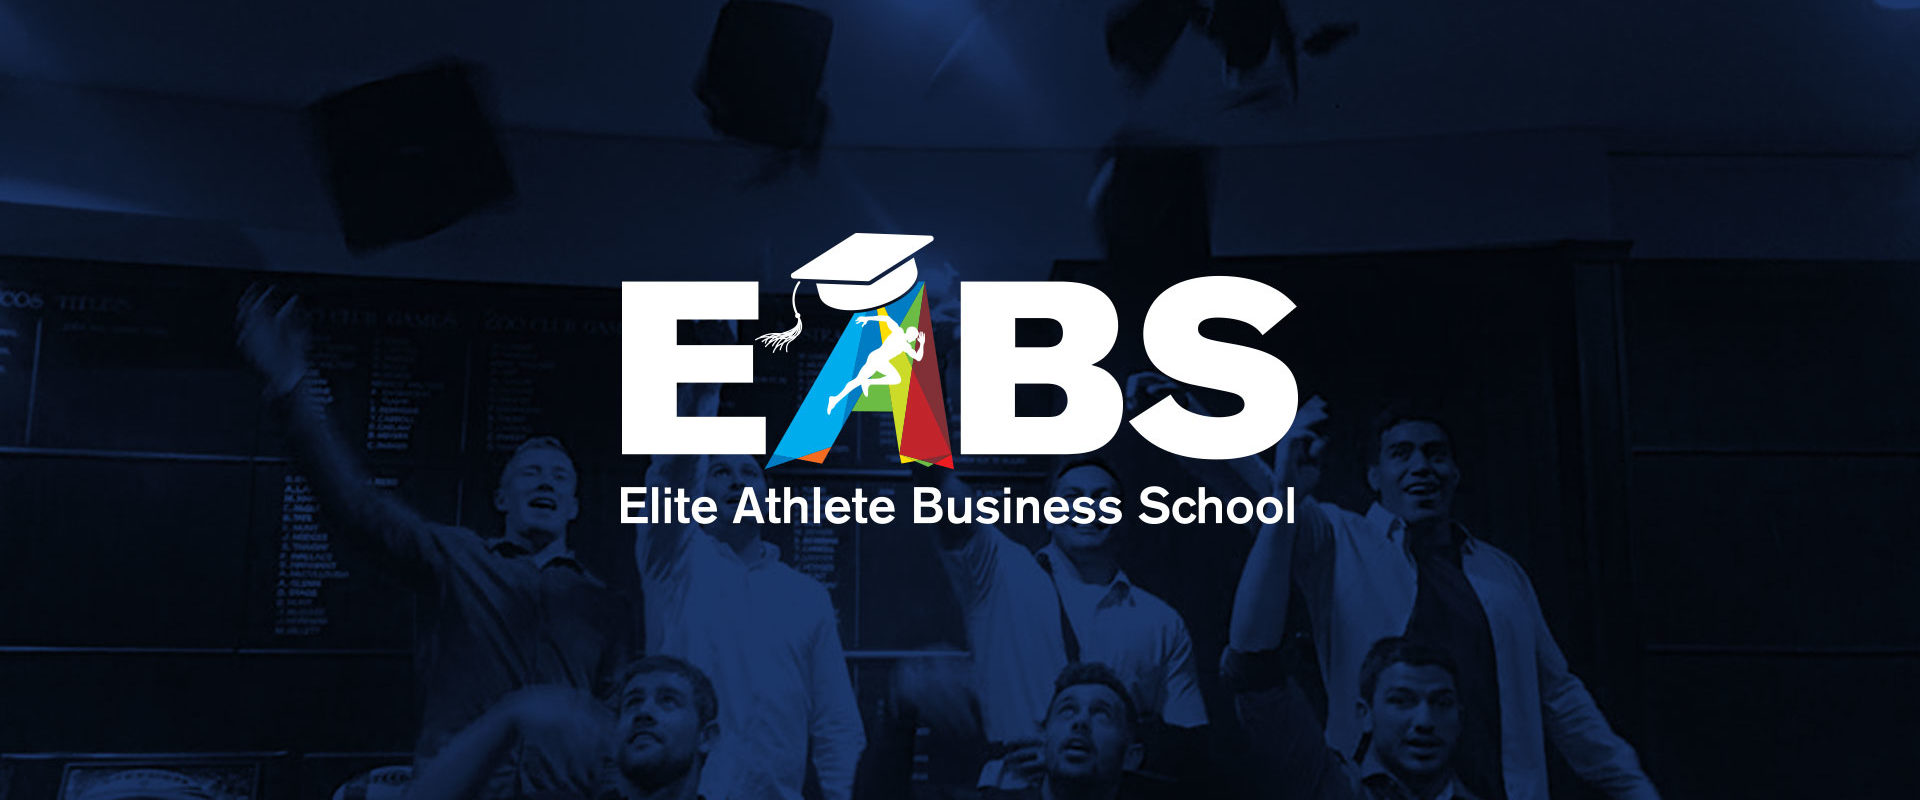 EABS logo with Graduates in the background